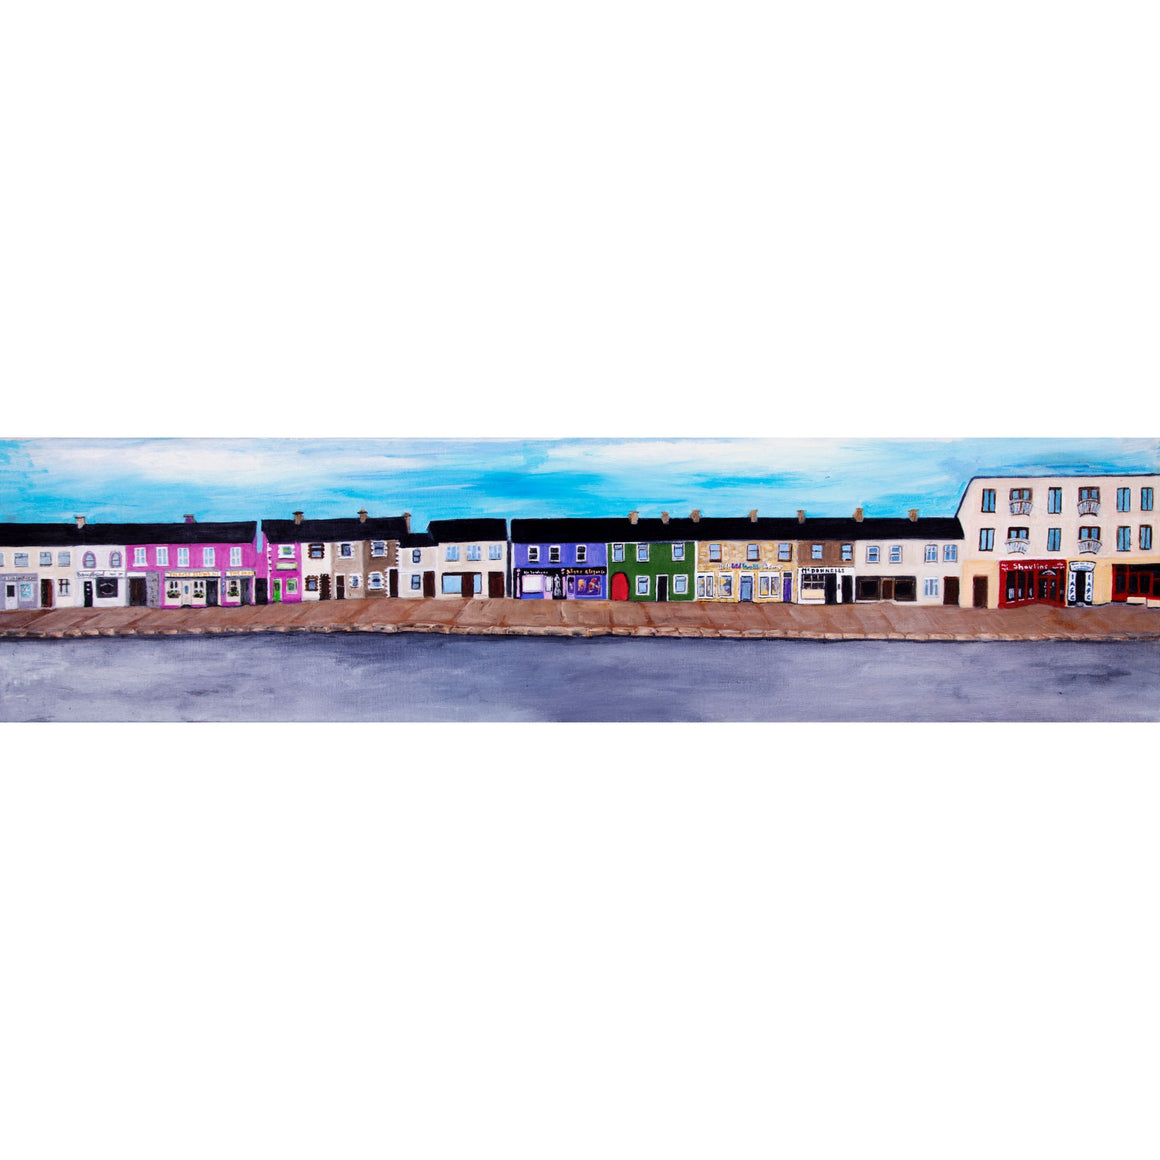 Barrack Street Belmullet 18 x 6 ins canvas print